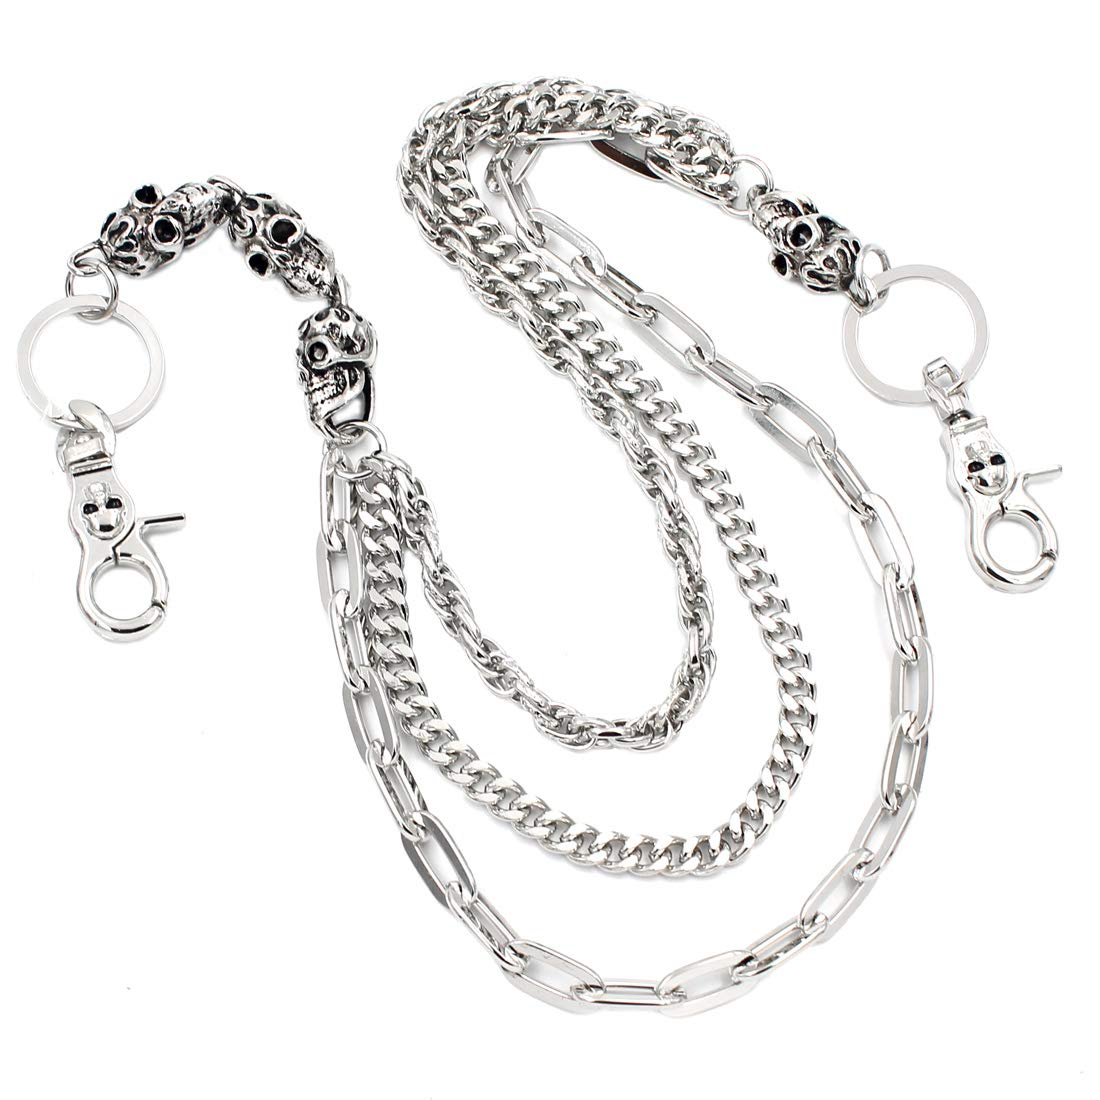 Uniqsum Fire Skull charm Triple links wallet chain Biker Key chains (Silver)